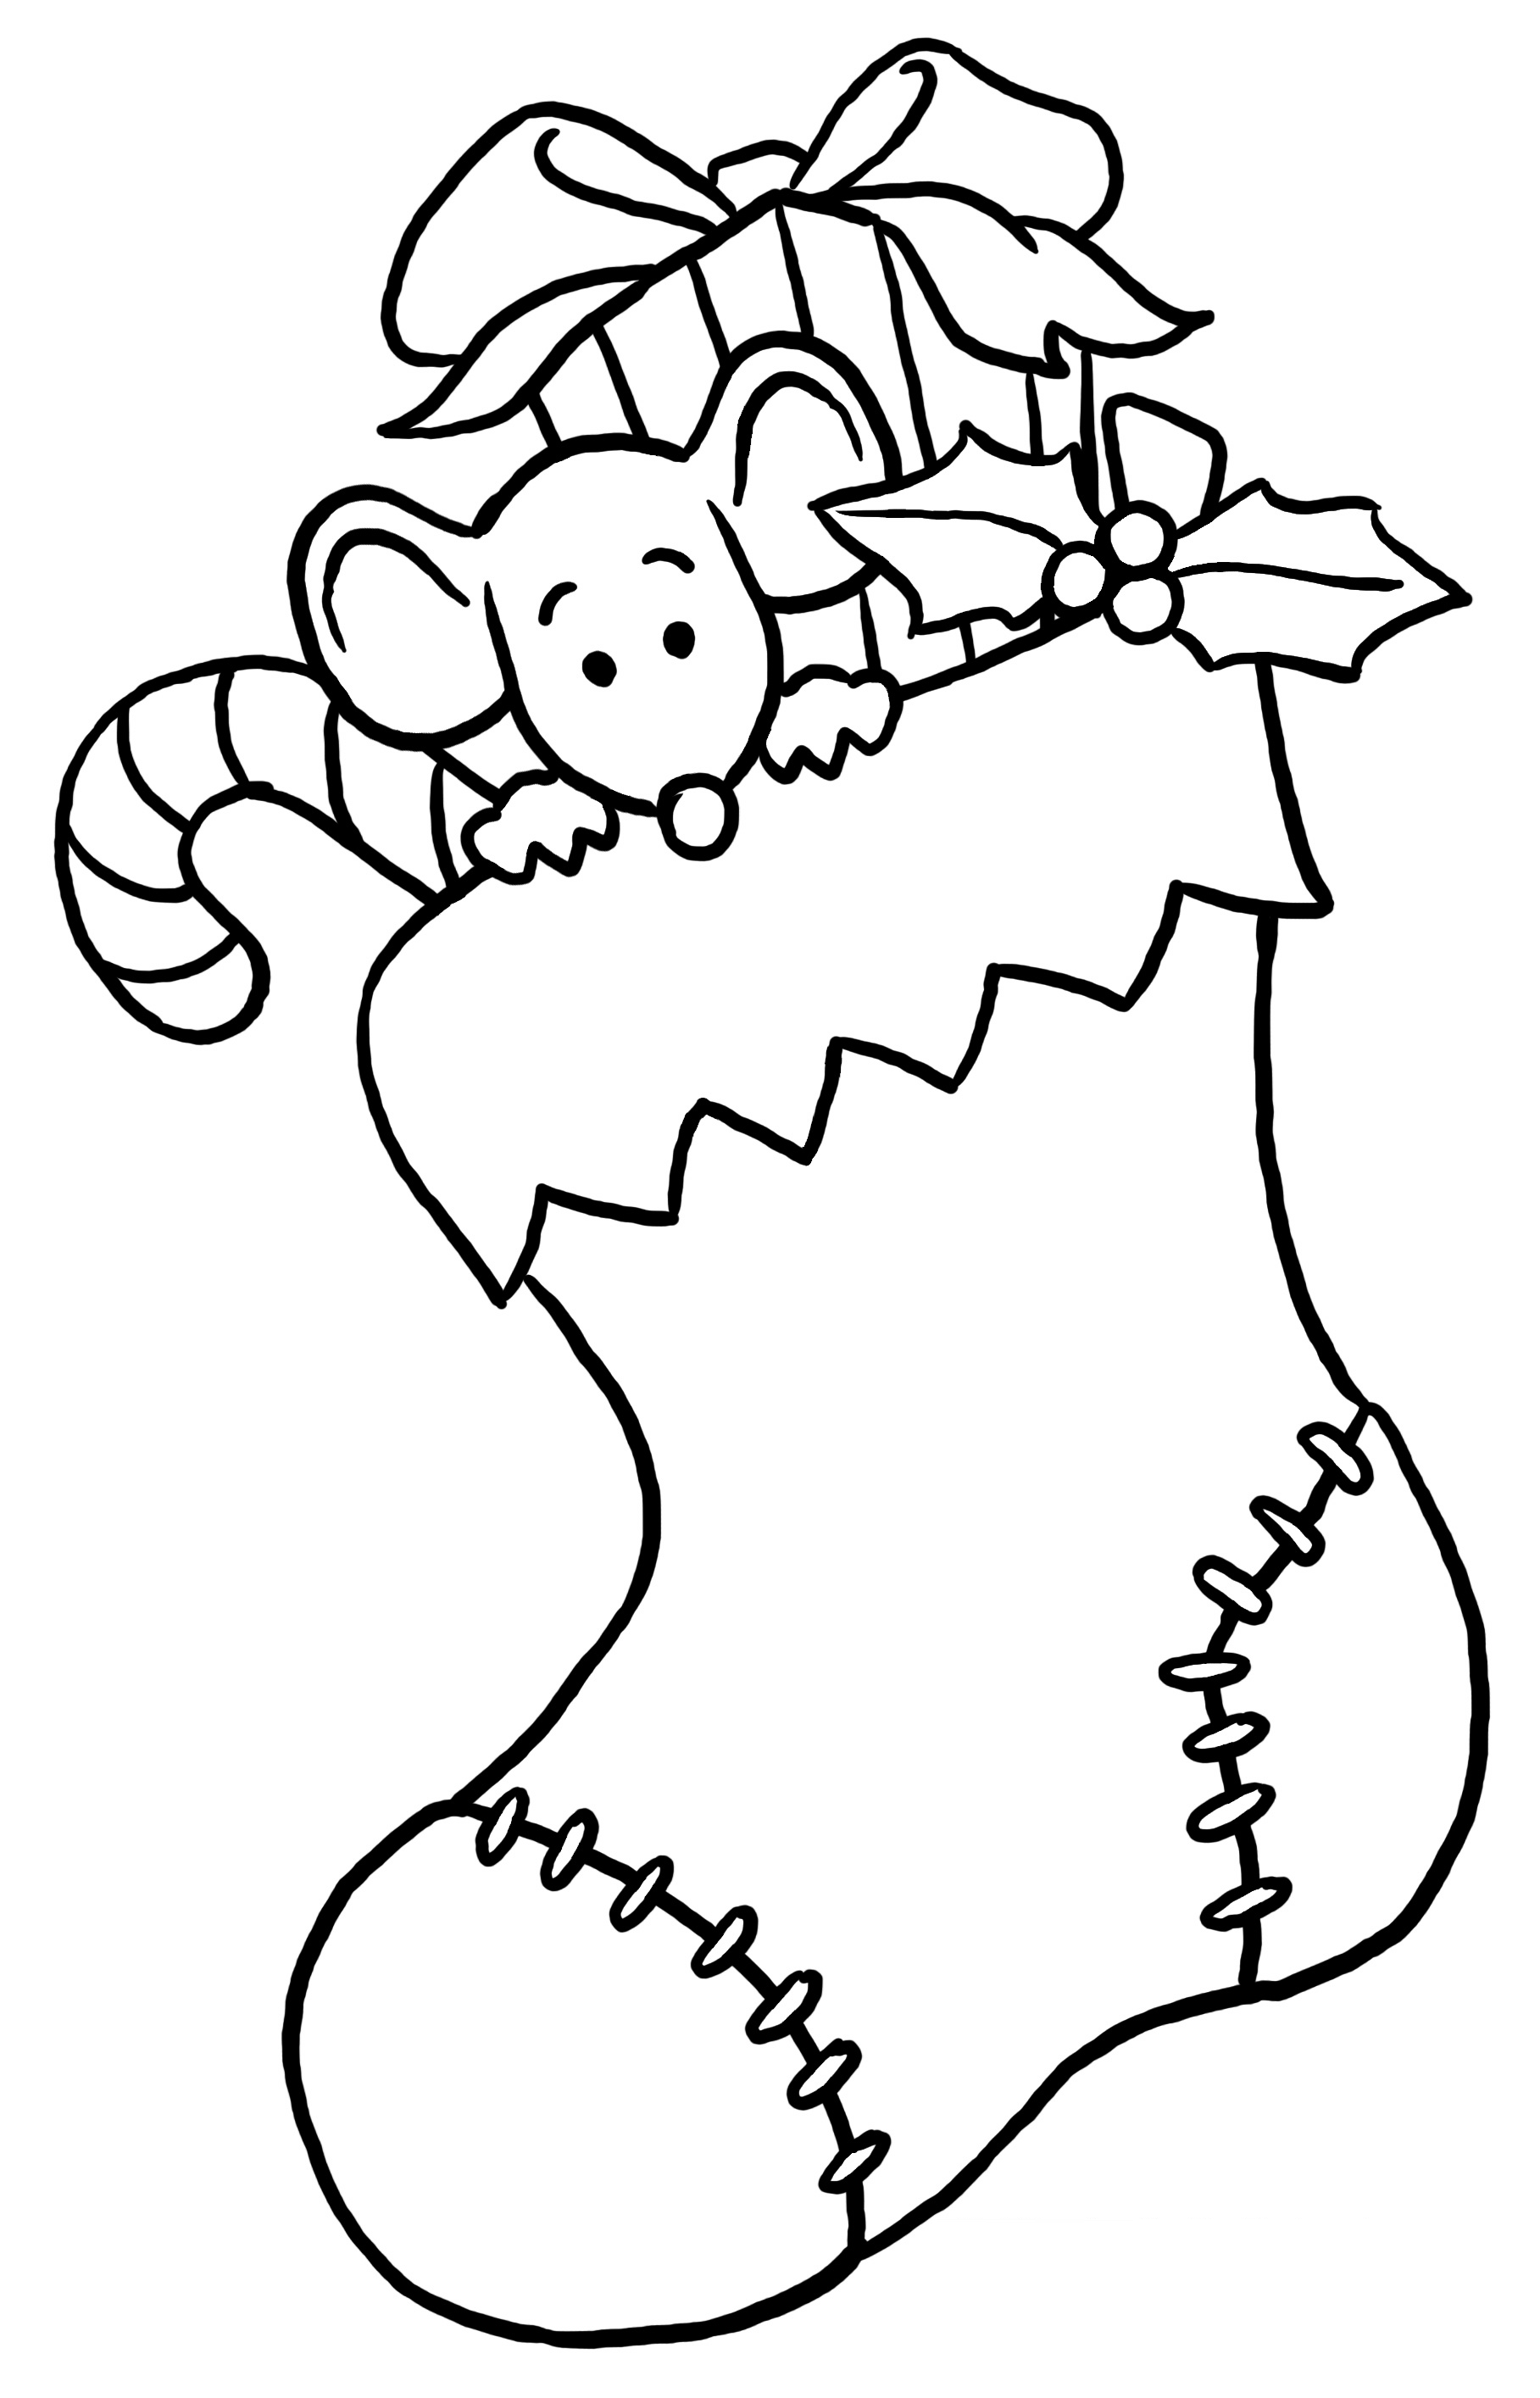 Colouring Pages To Print For Free : Christmas fun coloring pages free printable download